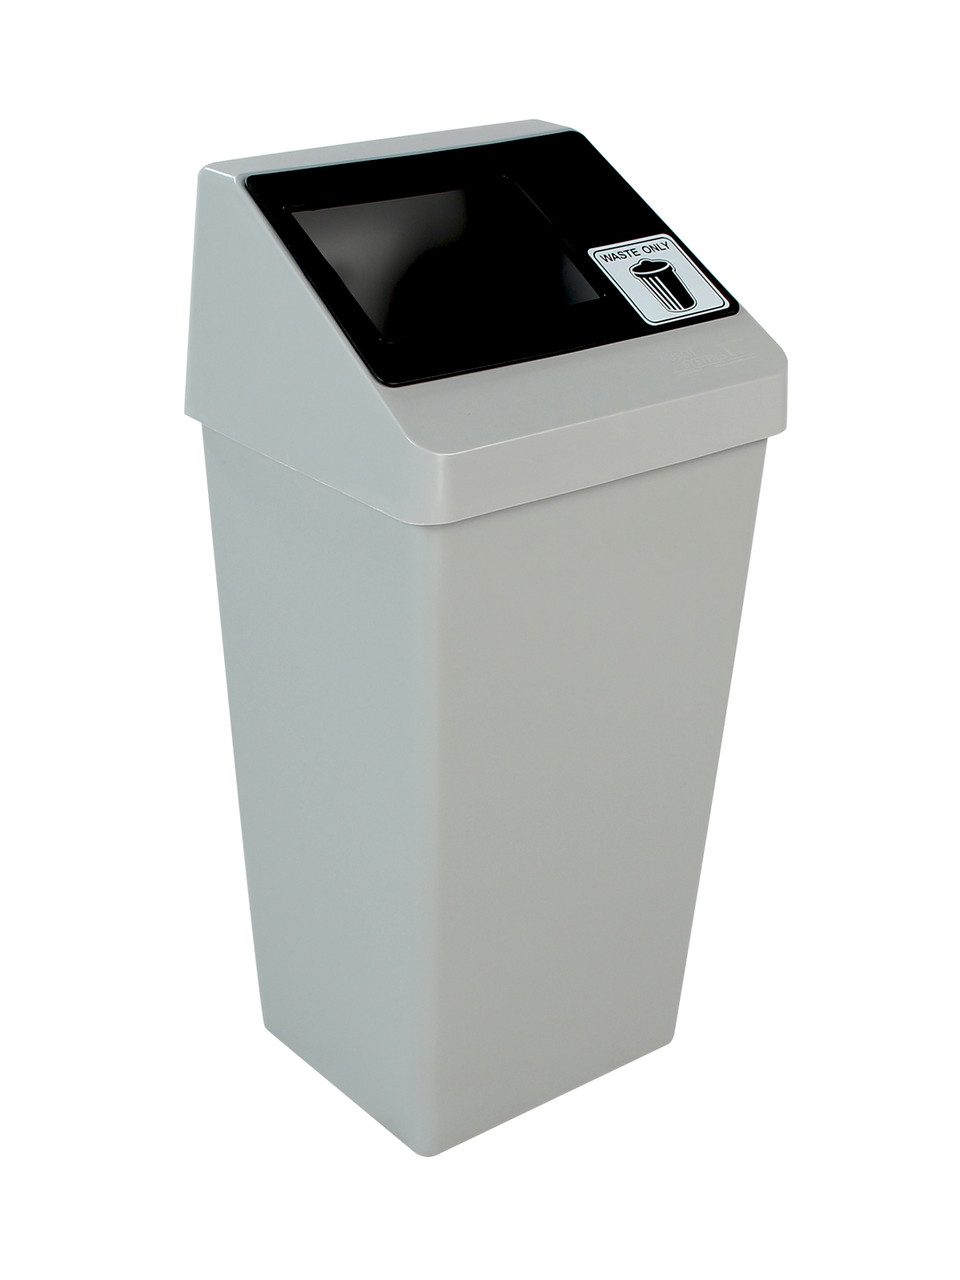 22 Gallon Smart Sort Trash Can Gray and Black 100841 (Waste Only)